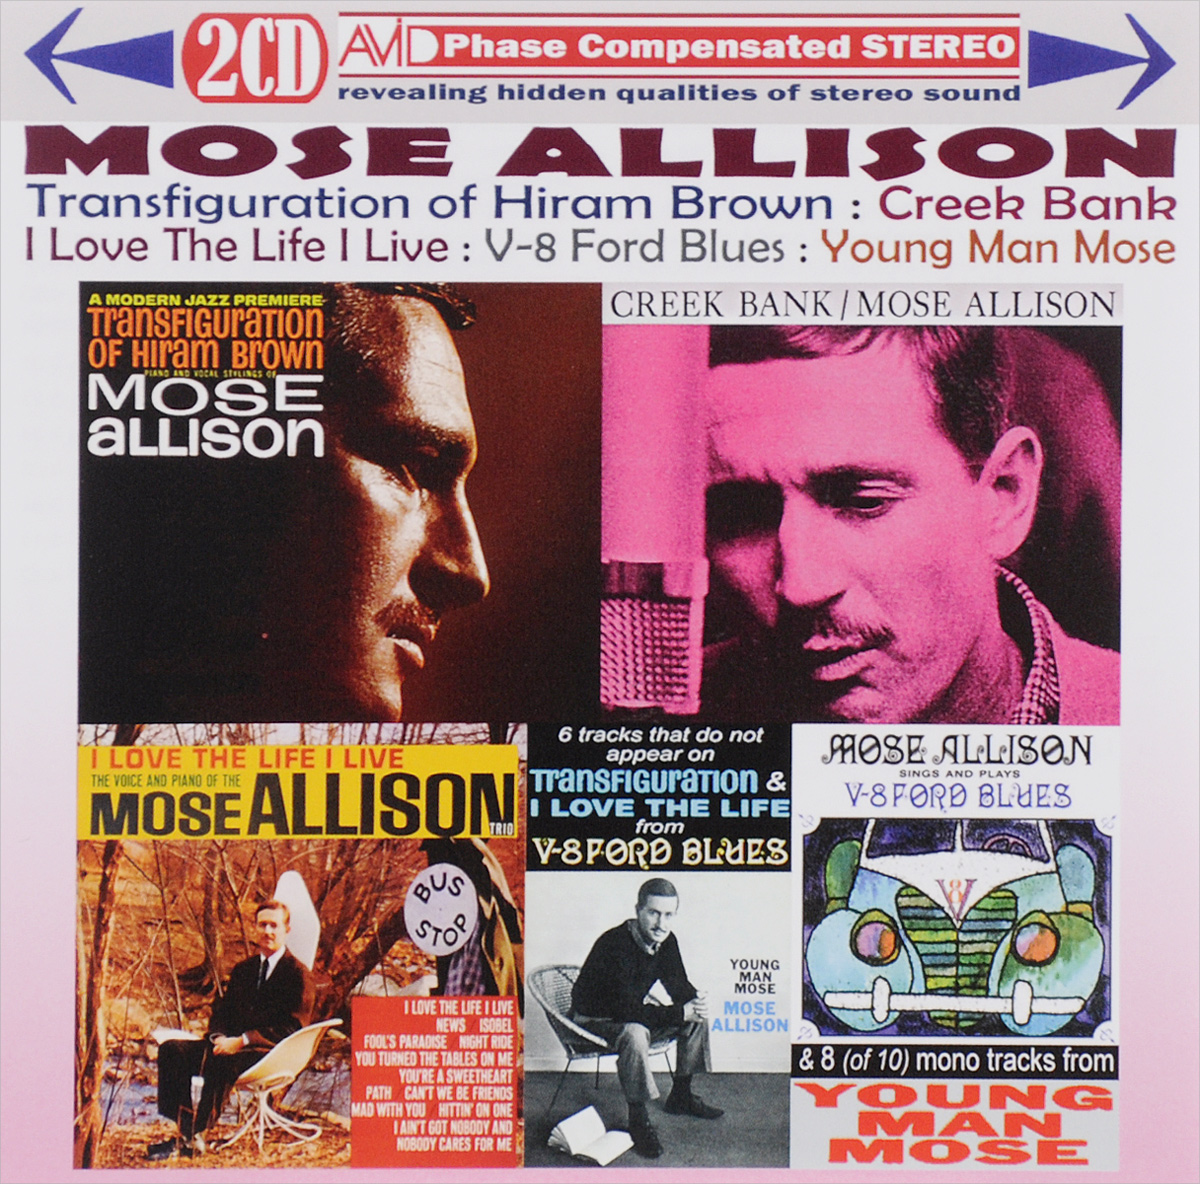 Моуз Эллисон Mose Allison. Transfiguration Of Hiram Brown / Creek Bank / I Love The Life I Live / V-8 Ford Blues / Young Man Mose (2 CD) моуз эллисон mose allison transfiguration of hiram brown creek bank i love the life i live v 8 ford blues young man mose 2 cd